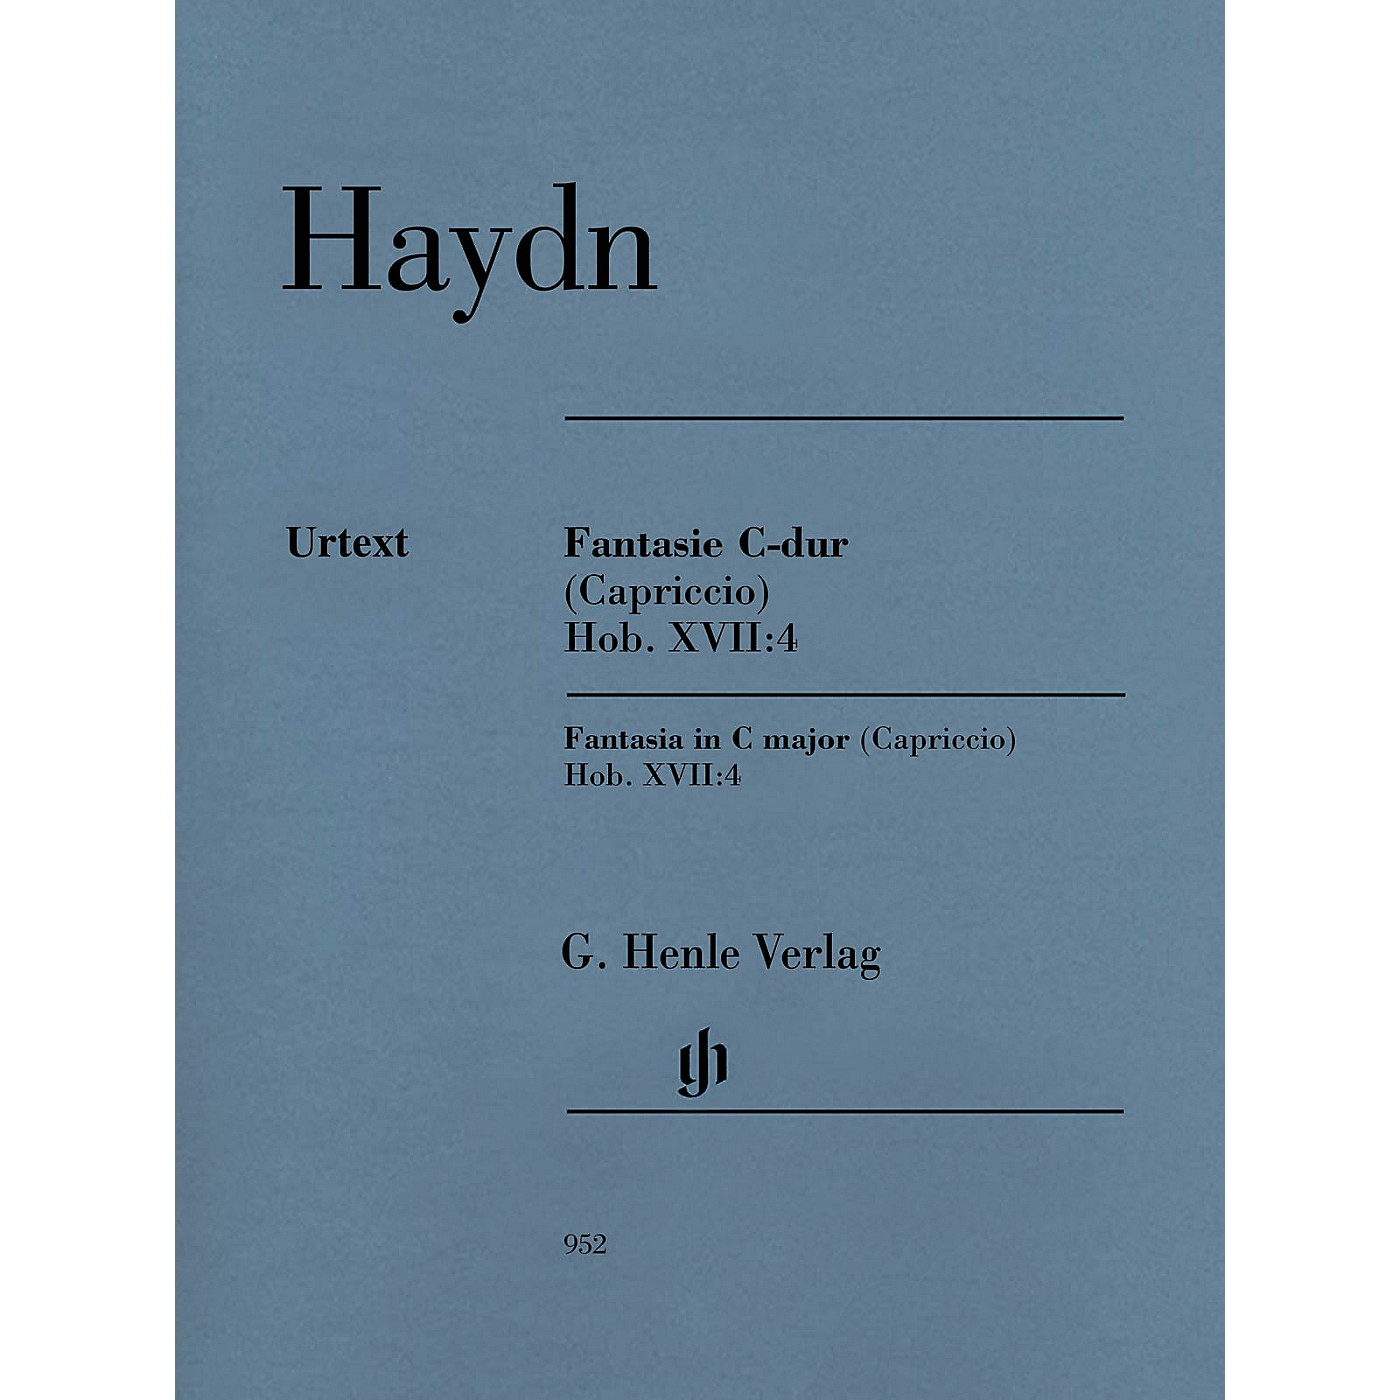 G. Henle Verlag Fantasia in C Major (Capriccio) Hob. XVII:4 Henle Music Softcover by Haydn Edited by Sonja Gerlach thumbnail